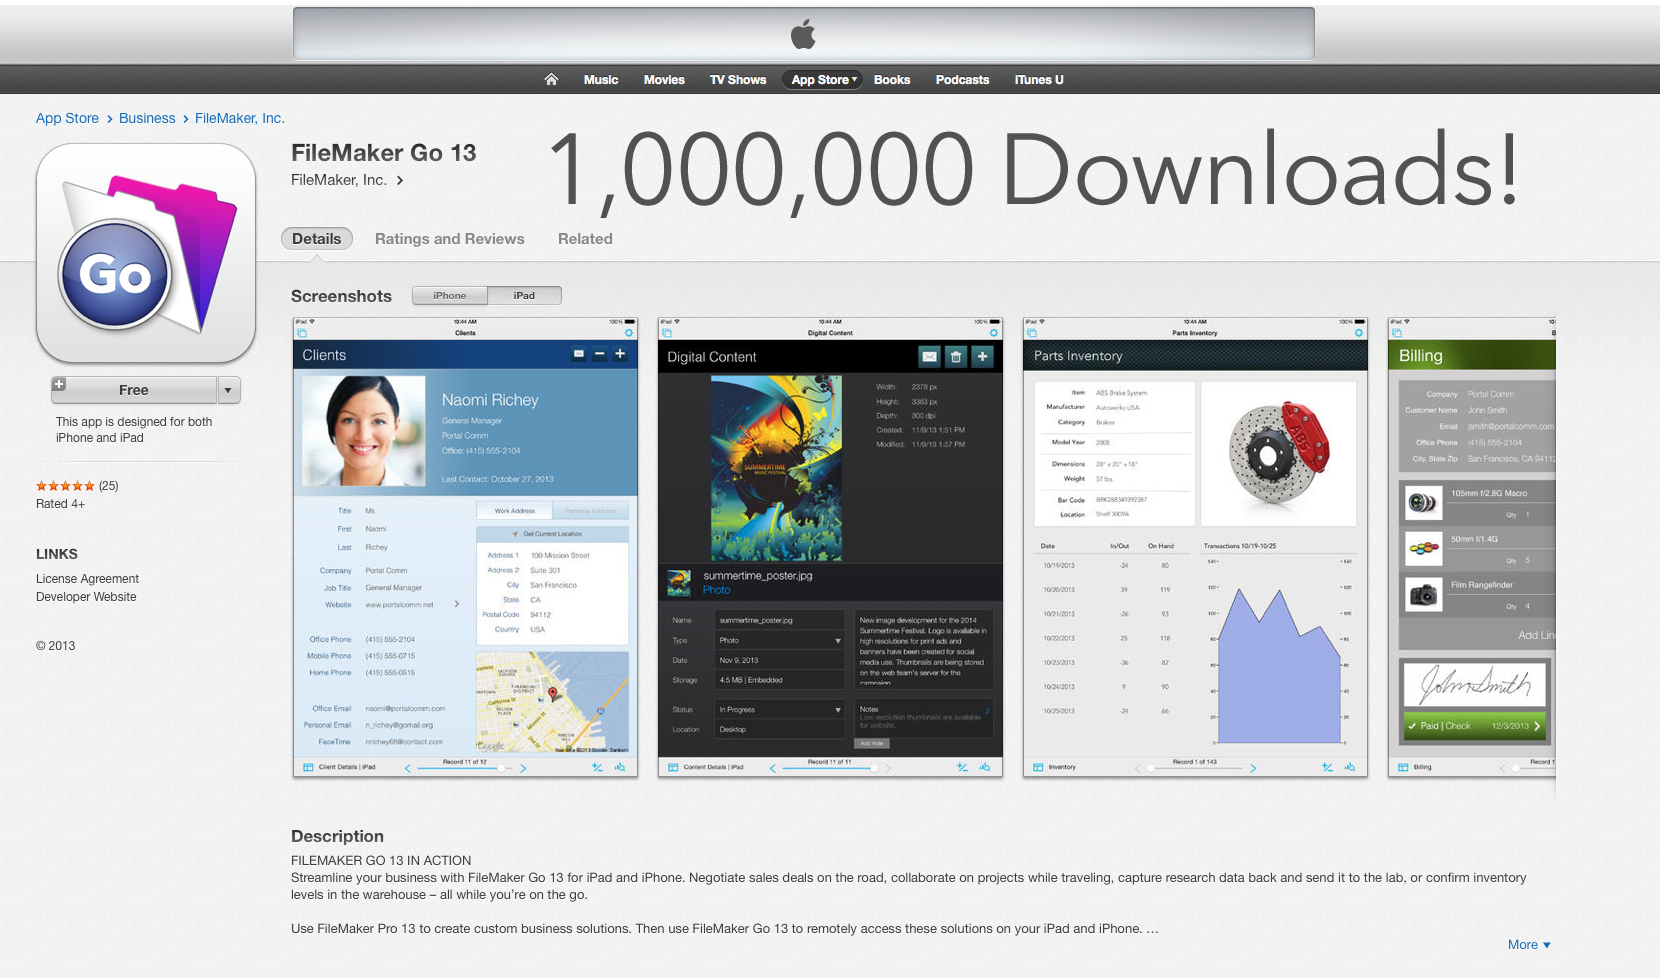 FileMaker Go for iPad and iPhone Apps Surpass 1 Million